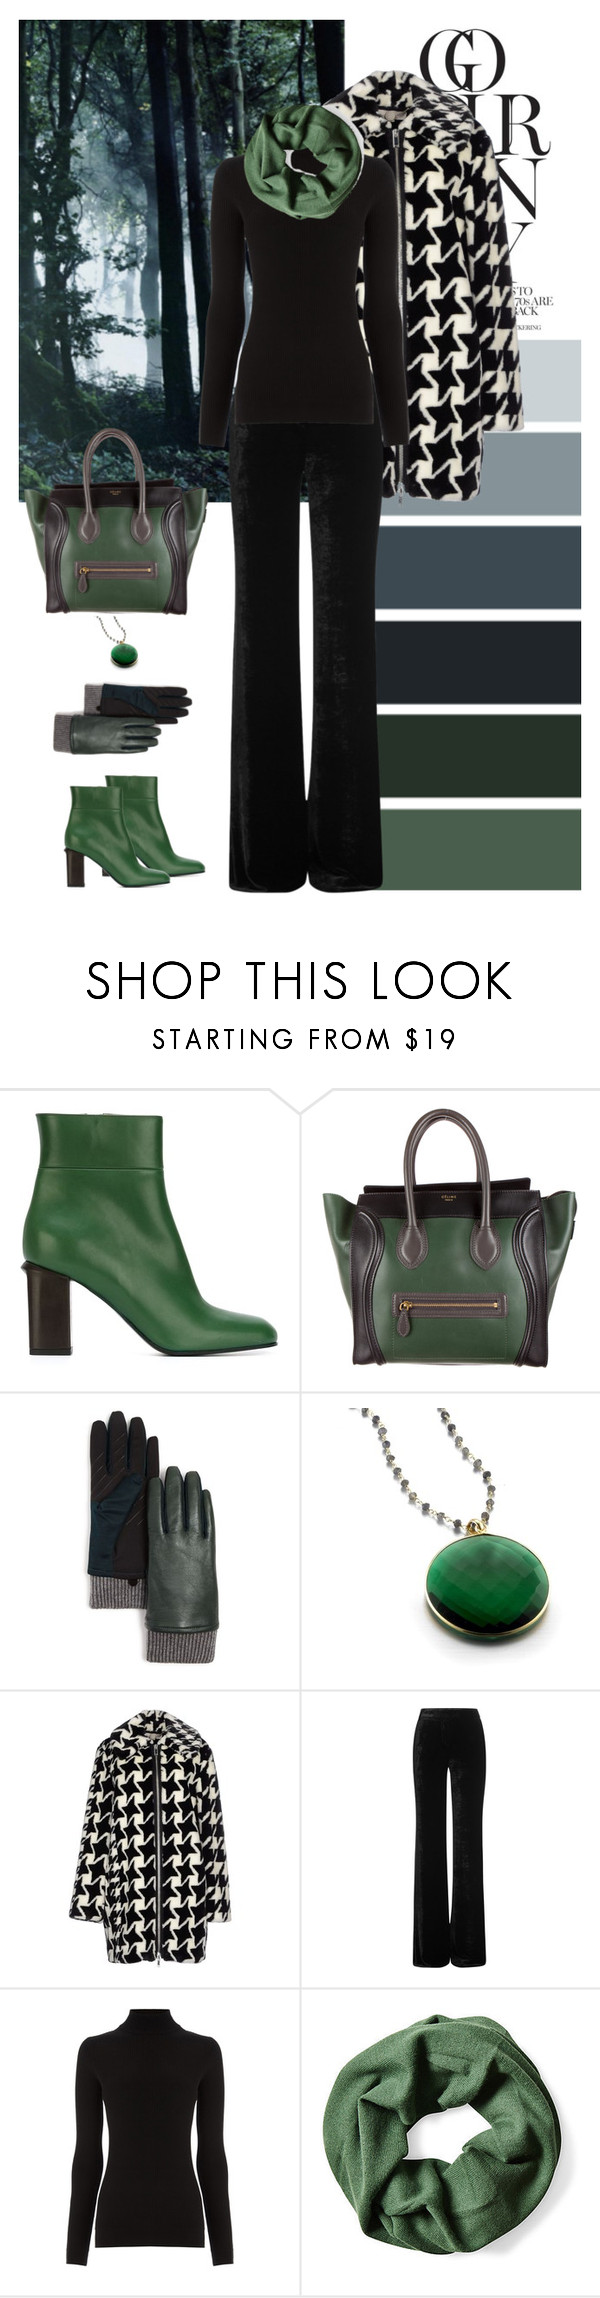 """""""Hues of Deep Forrest"""" by dezaval ❤ liked on Polyvore featuring Marni, CÉLINE, U